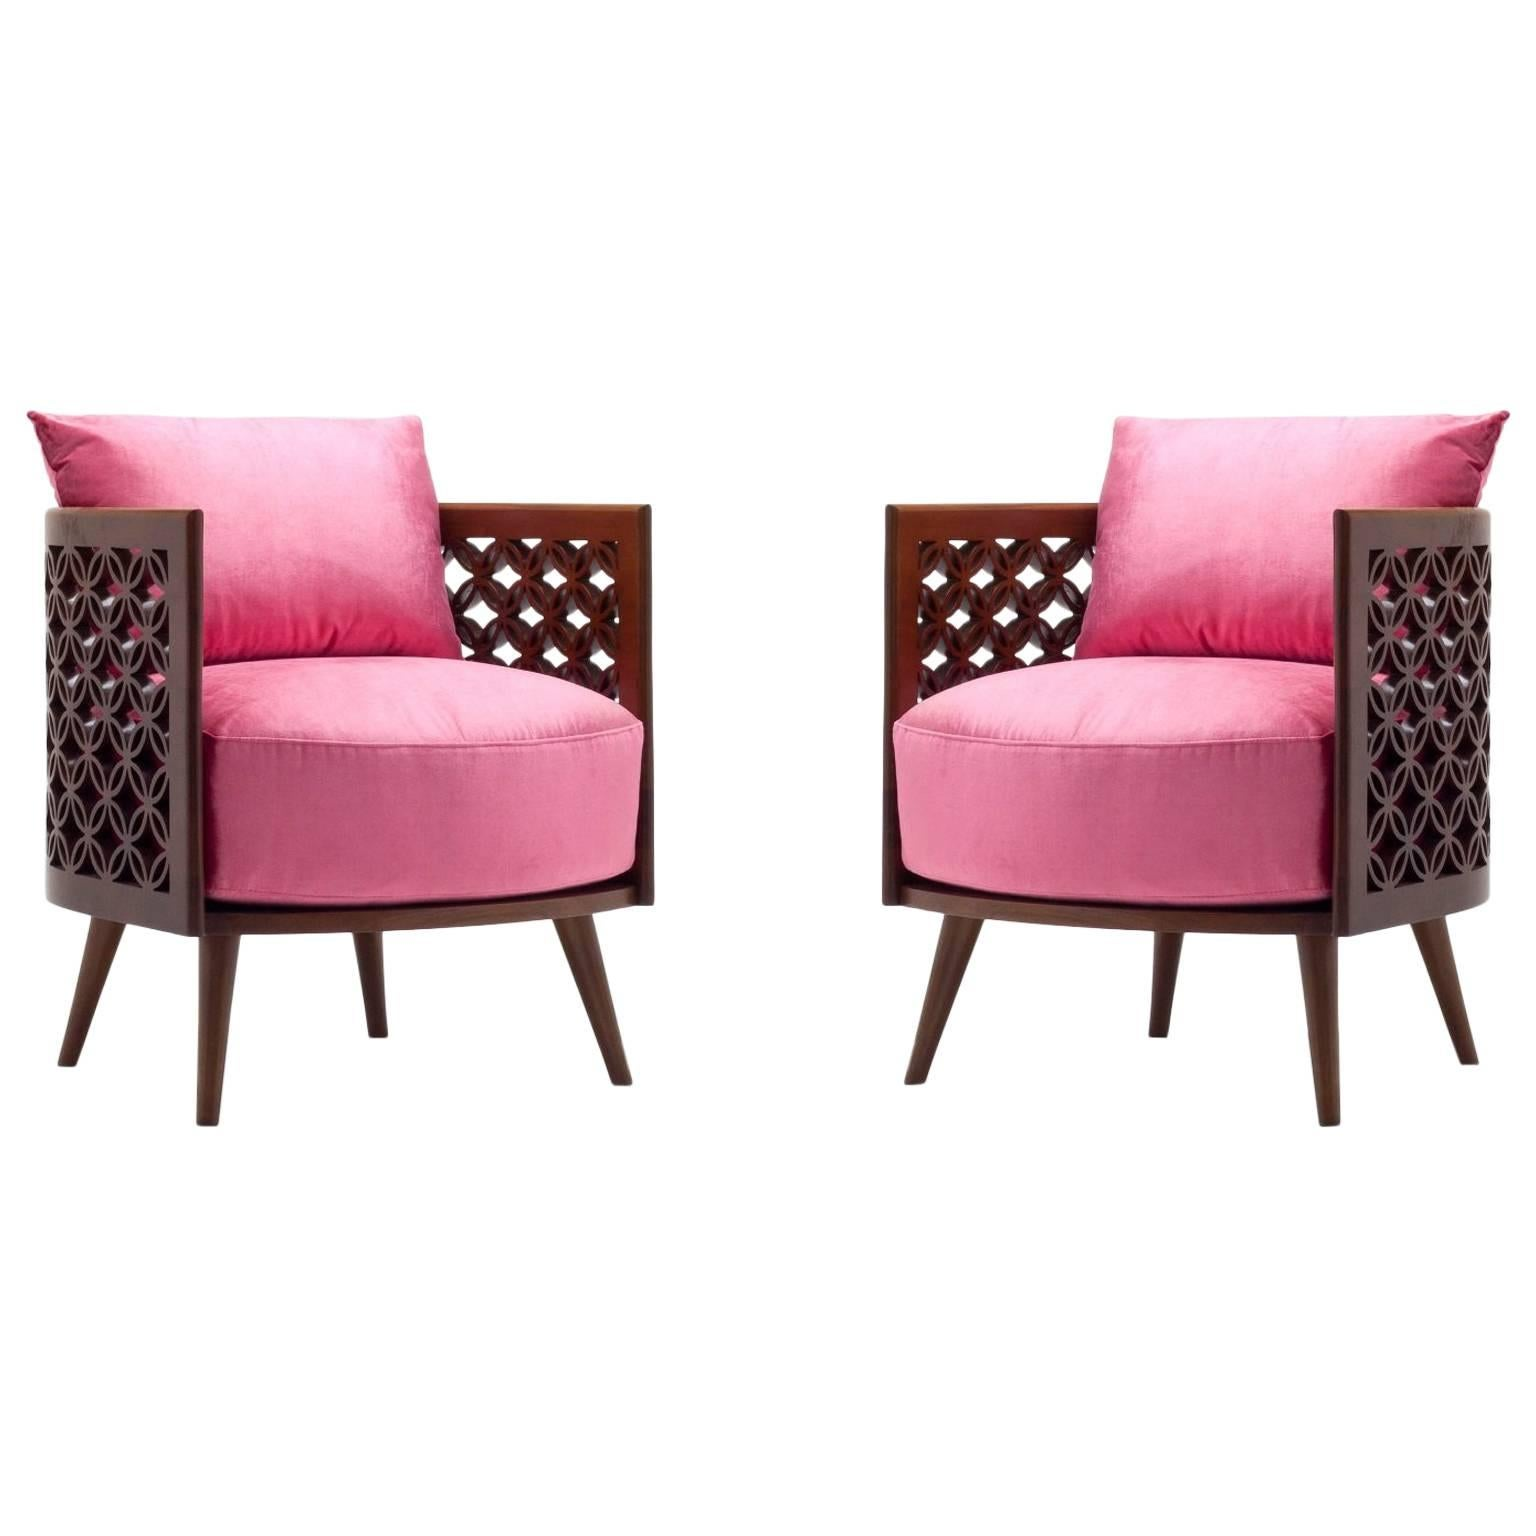 Arabesque Modern Armchairs by Nada Debs, Contemporary Armchair in Walnut